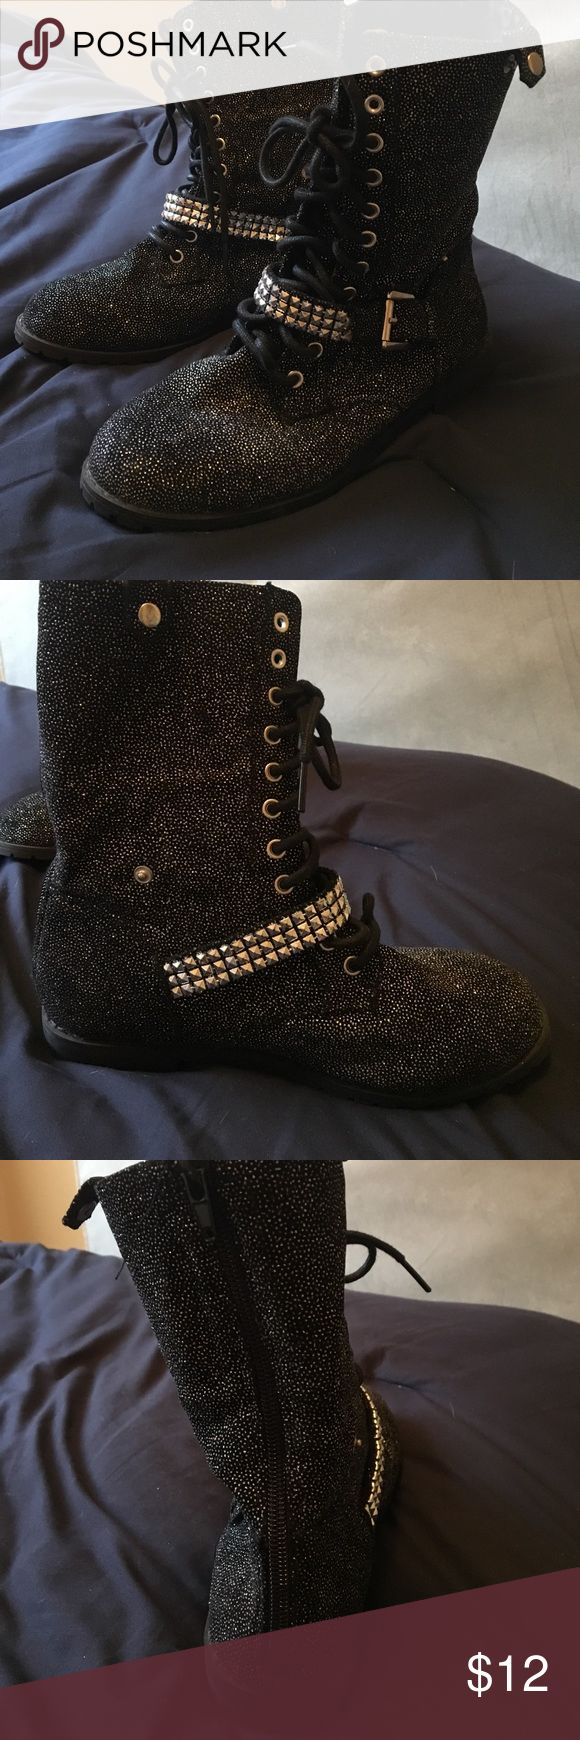 Black sparkle military style boots! Black with sparkles military style boots from Justice. Size 6 worn 1x excellent condition. Lace up and have clips on the side to fold down. Bundle to save or make your best offer! Justice Shoes Lace Up Boots